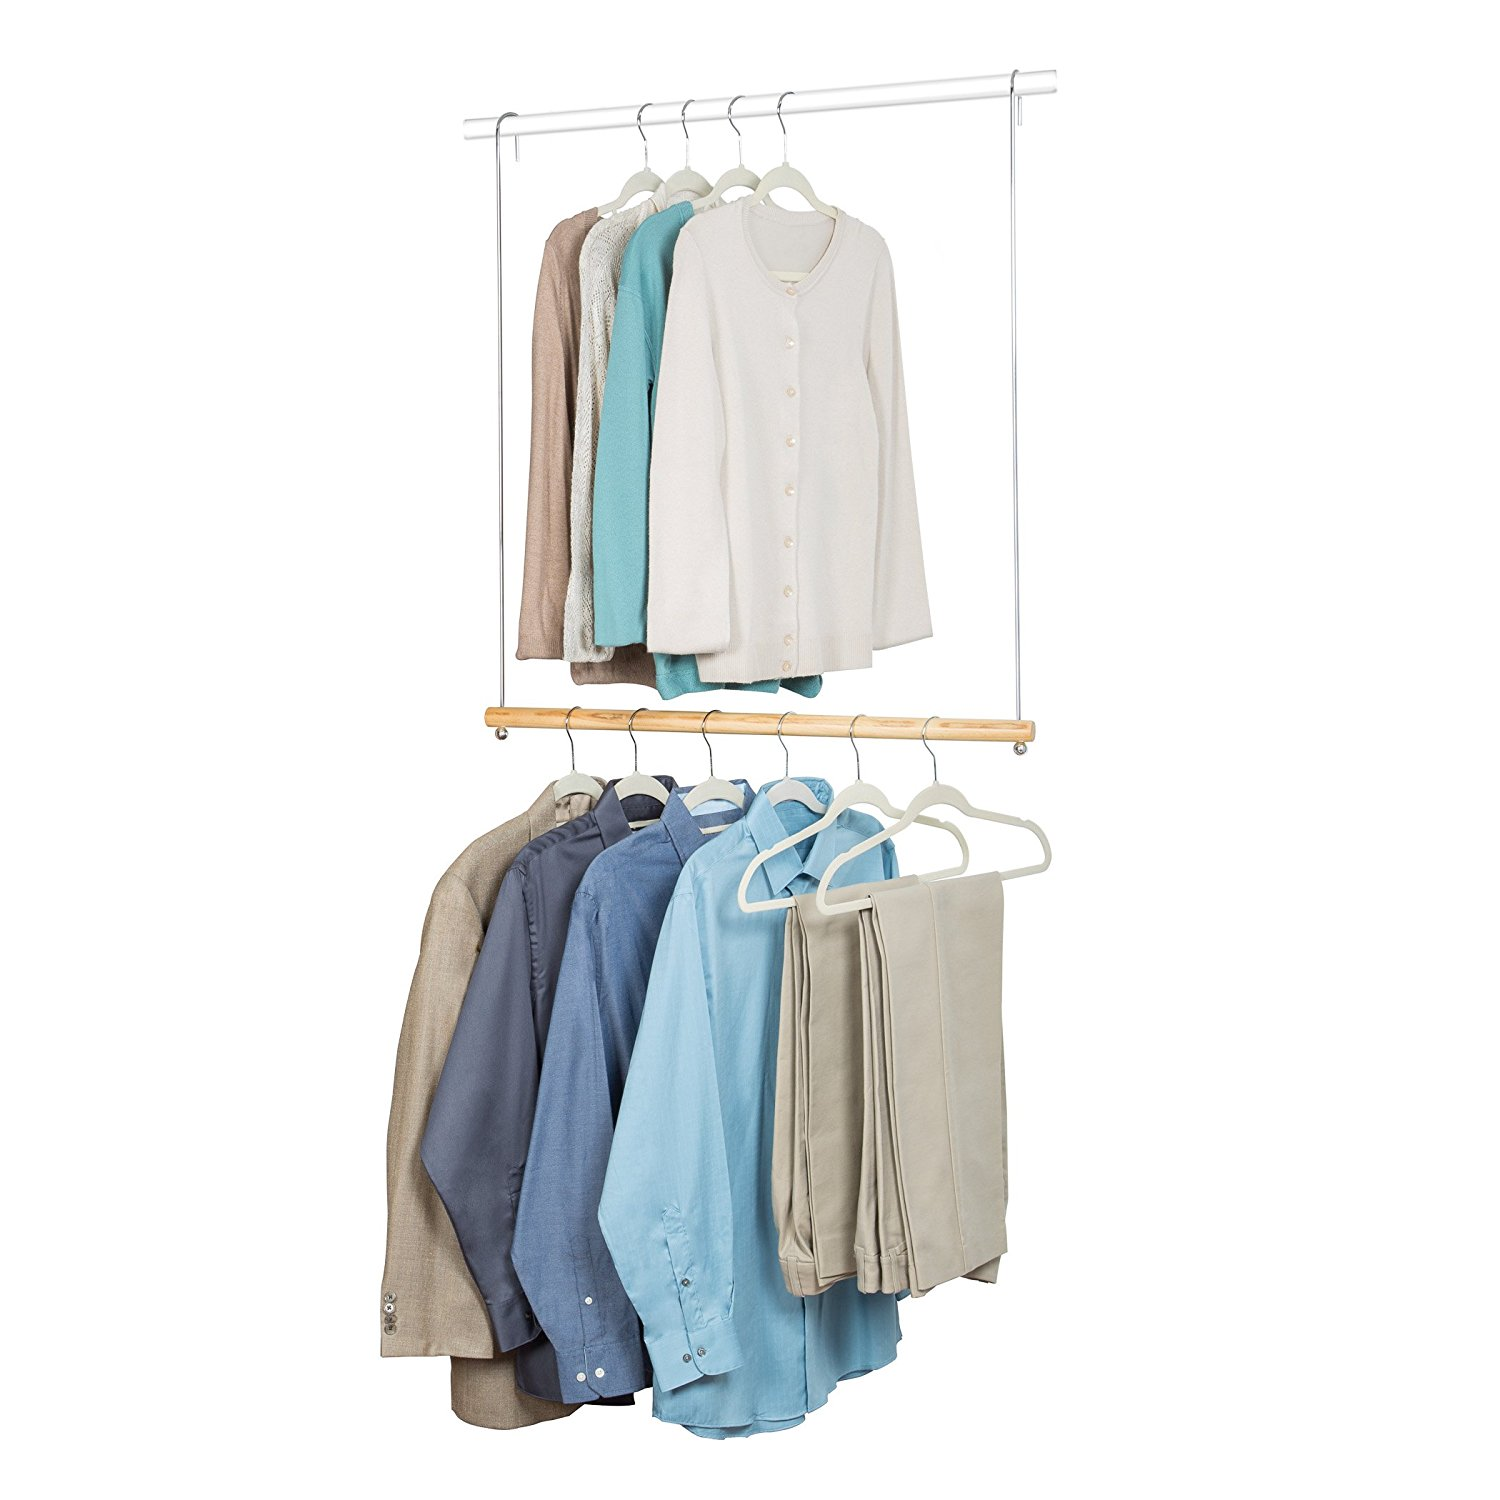 1. Durable and reliable iron chrome plated & solid wood material makes it  can be used for a long time 2. It is very easy to hang and remove clothing